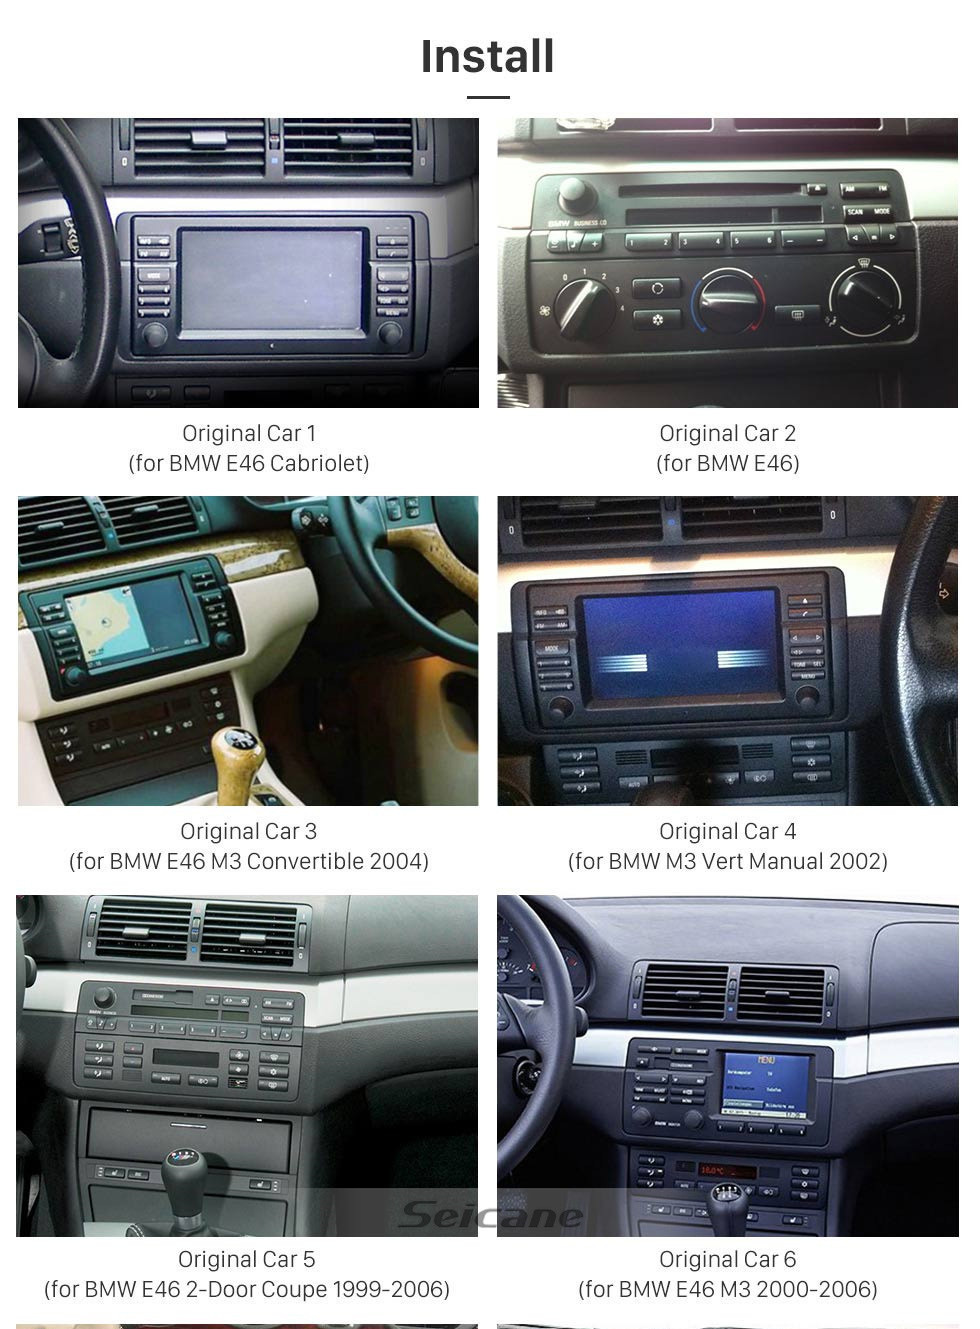 Seicane 7 inch Android 10.0 GPS Navigation Radio for 1999-2004 Rover 75 with HD Touchscreen Carplay Bluetooth WIFI USB support Rearview camera Digital TV